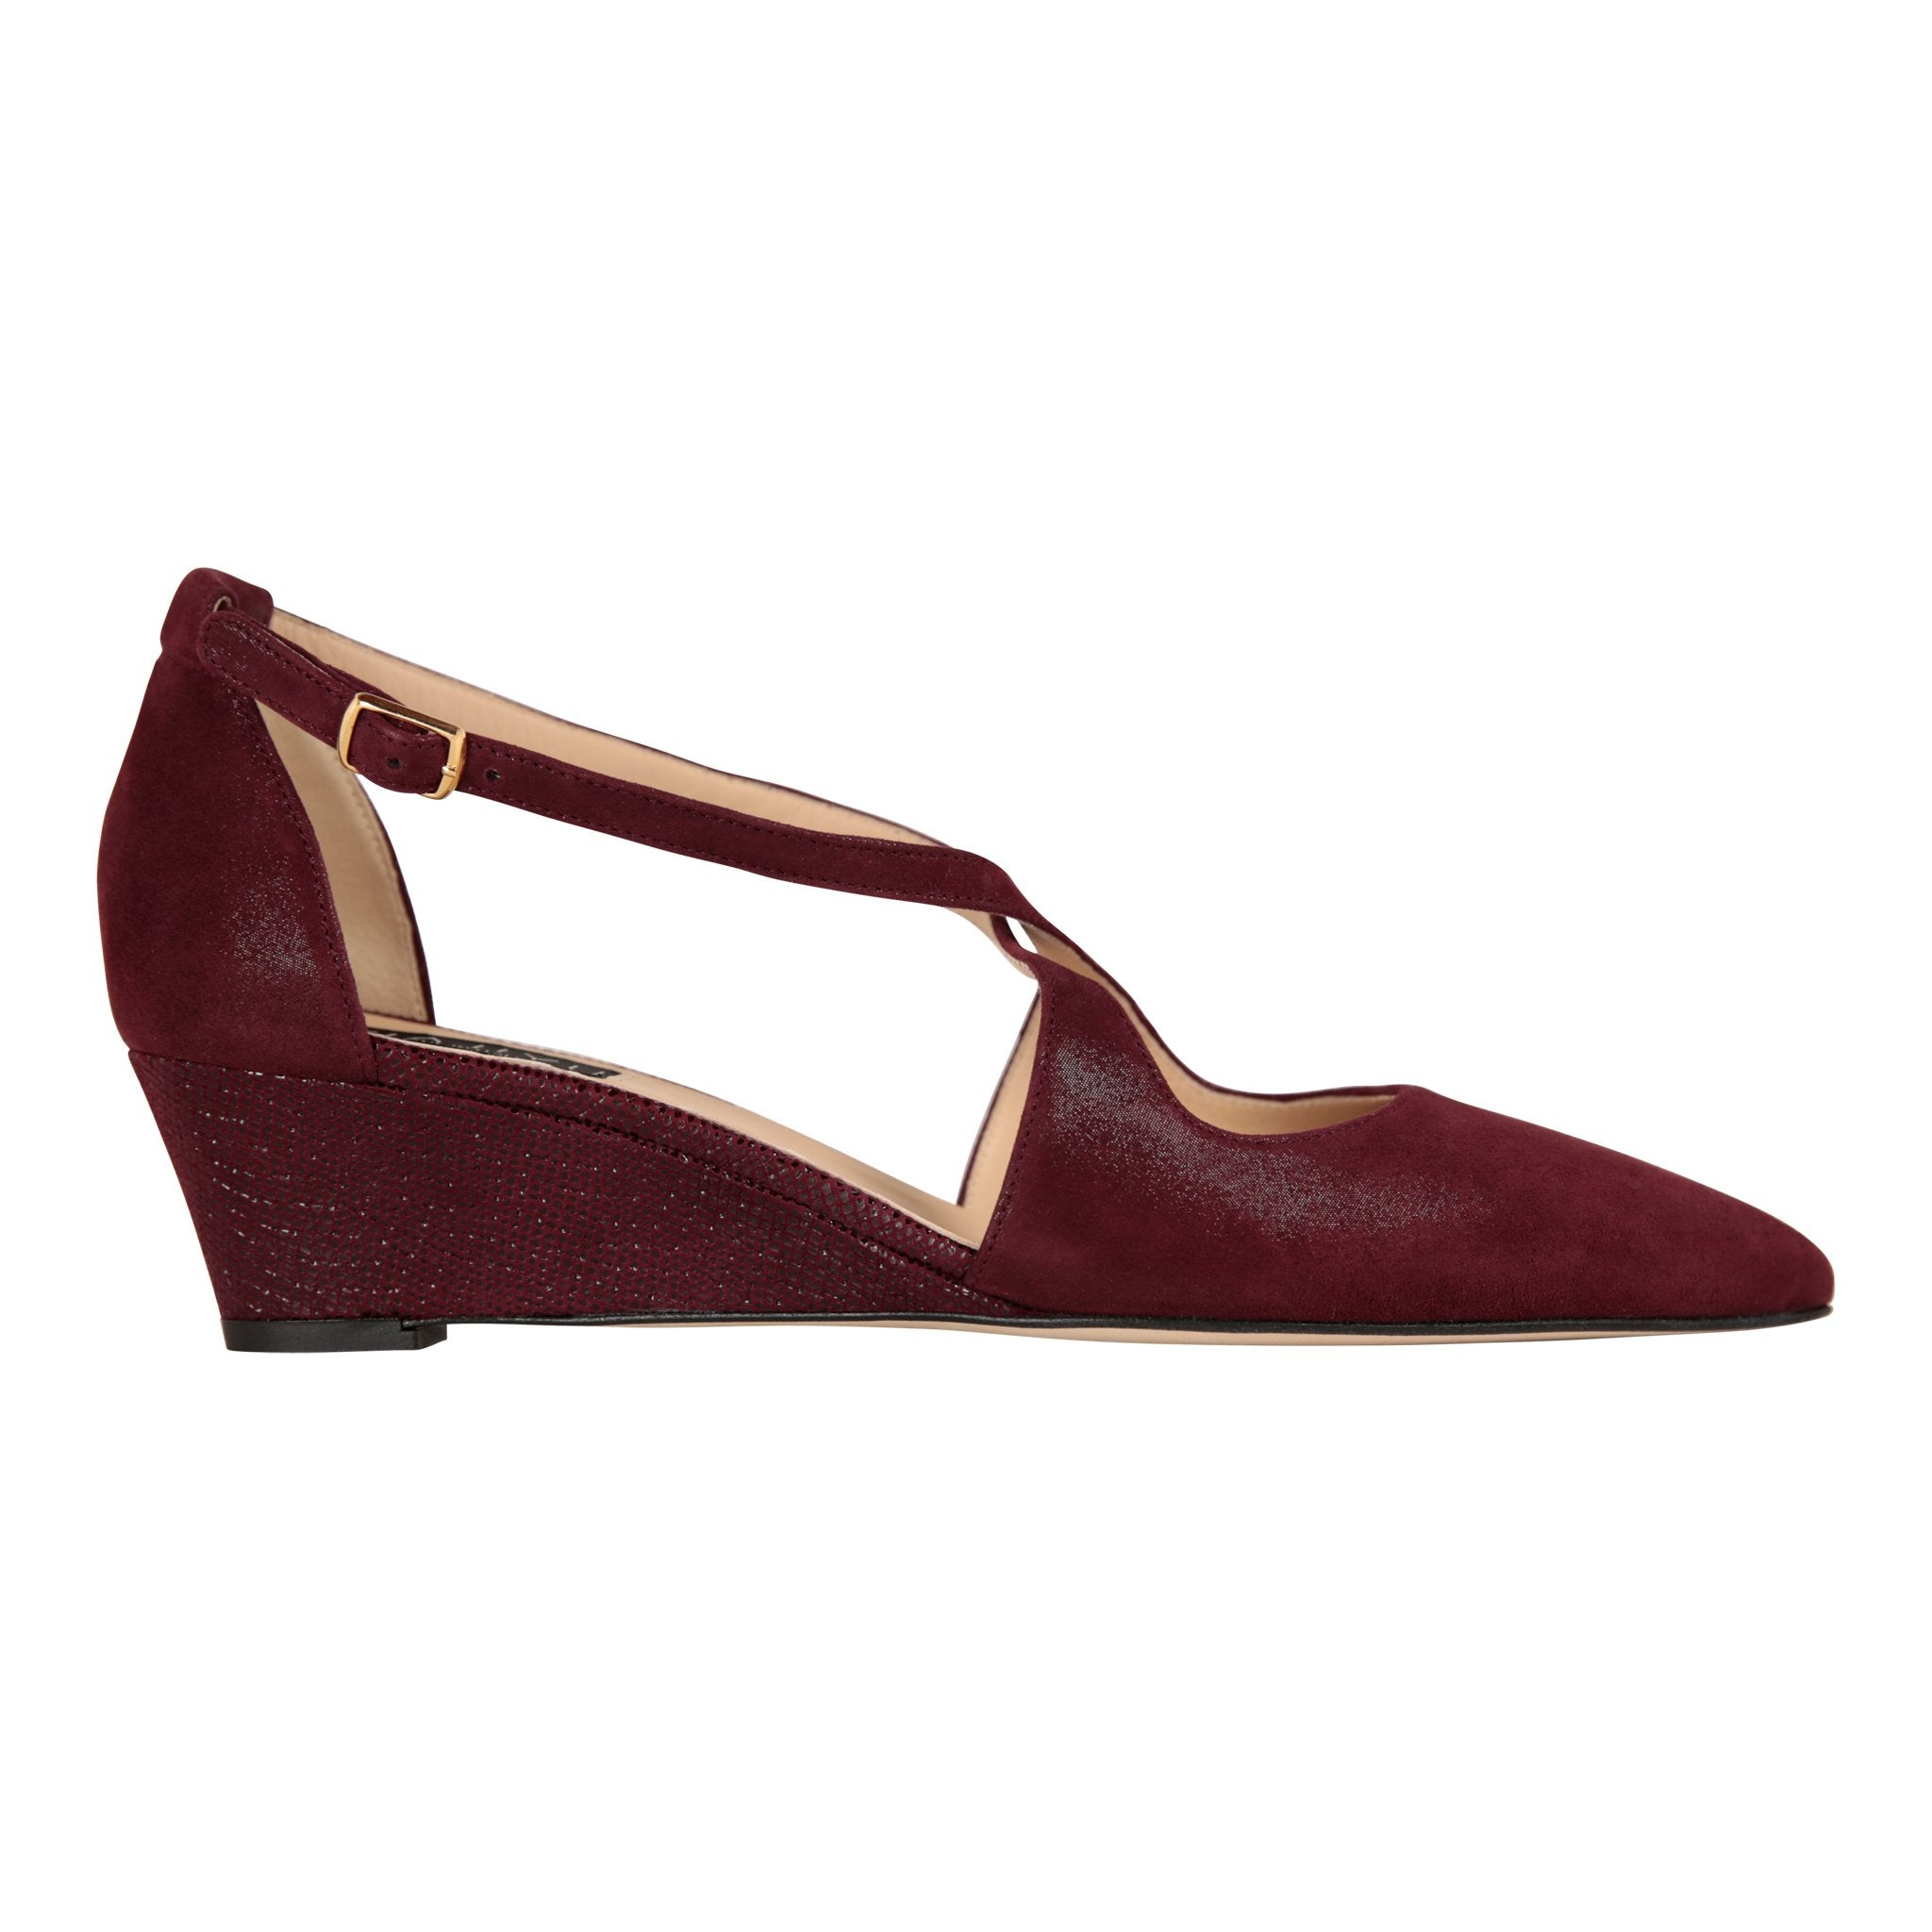 AREZZO - Hydra Garnet + Karung, VIAJIYU - Women's Hand Made Sustainable Luxury Shoes. Made in Italy. Made to Order.